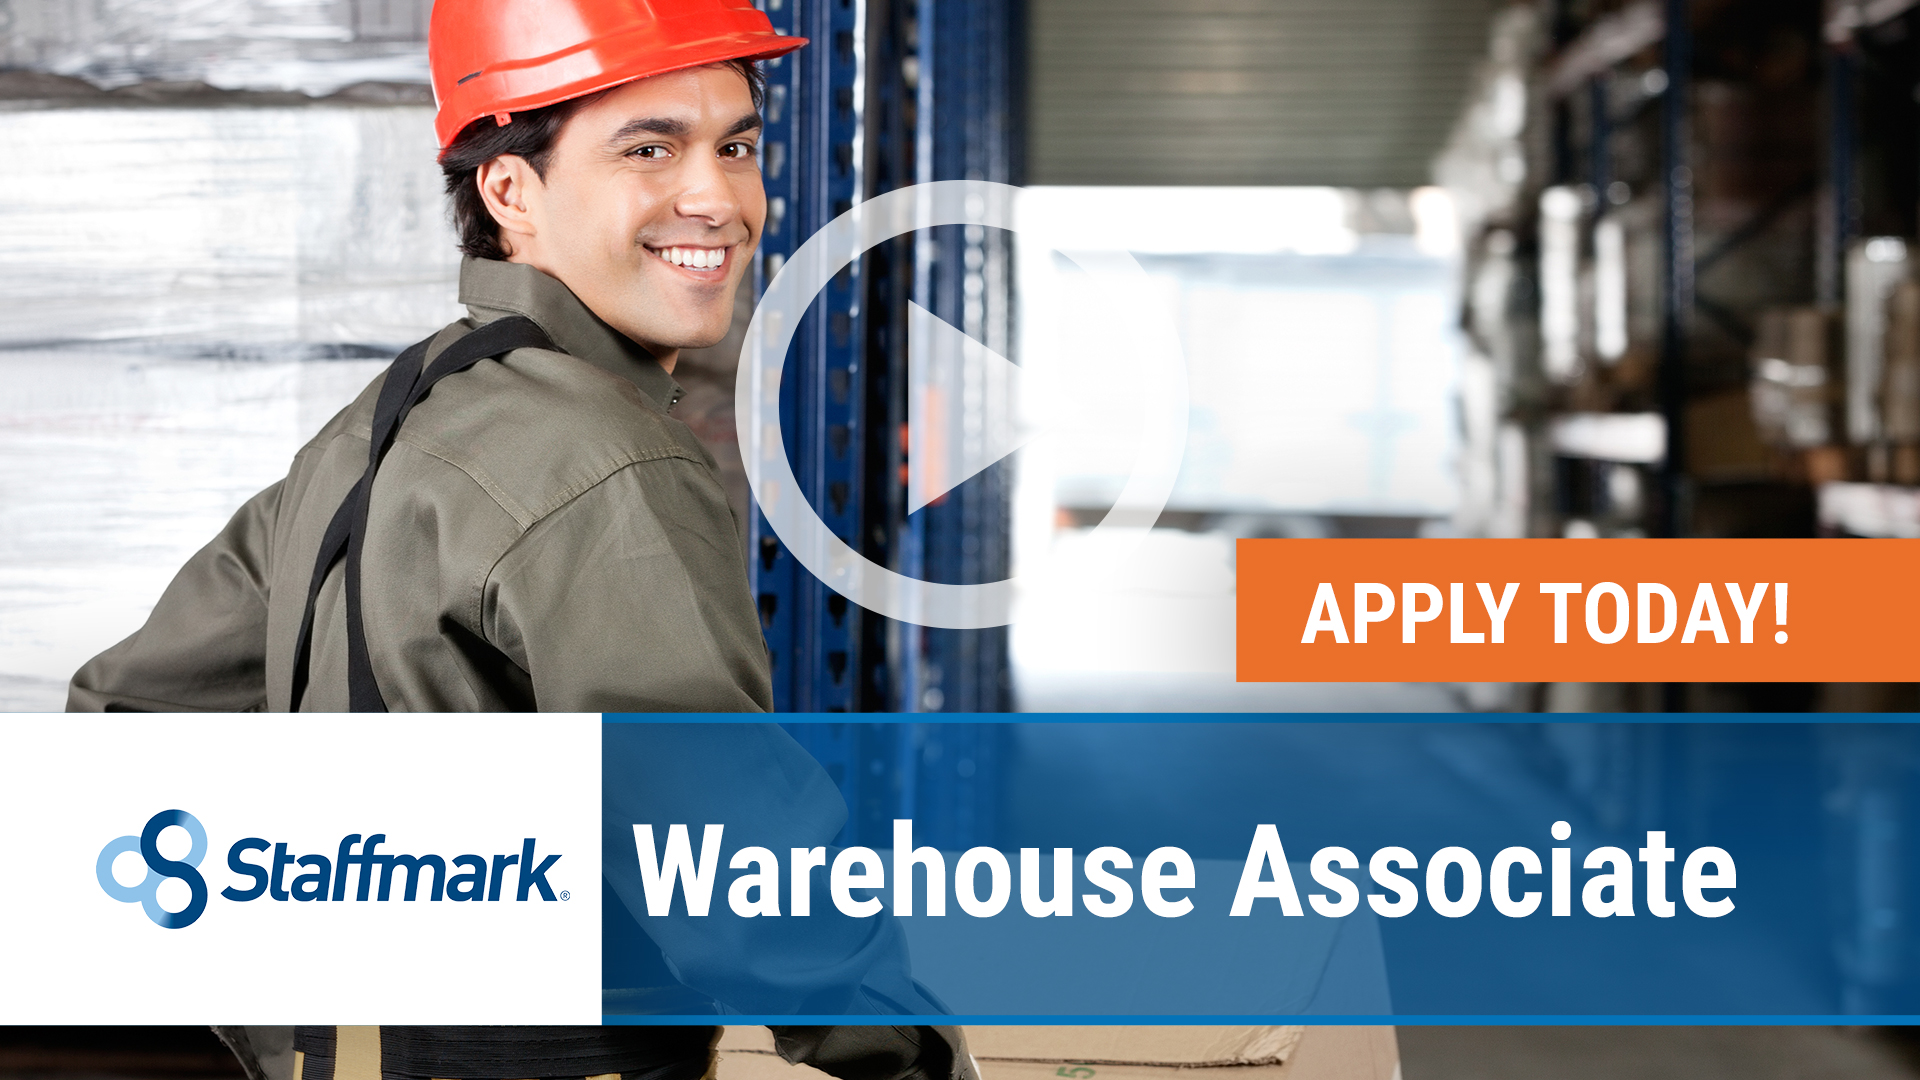 Watch our careers video for available job opening Warehouse Associate in Louisville, KY, USA